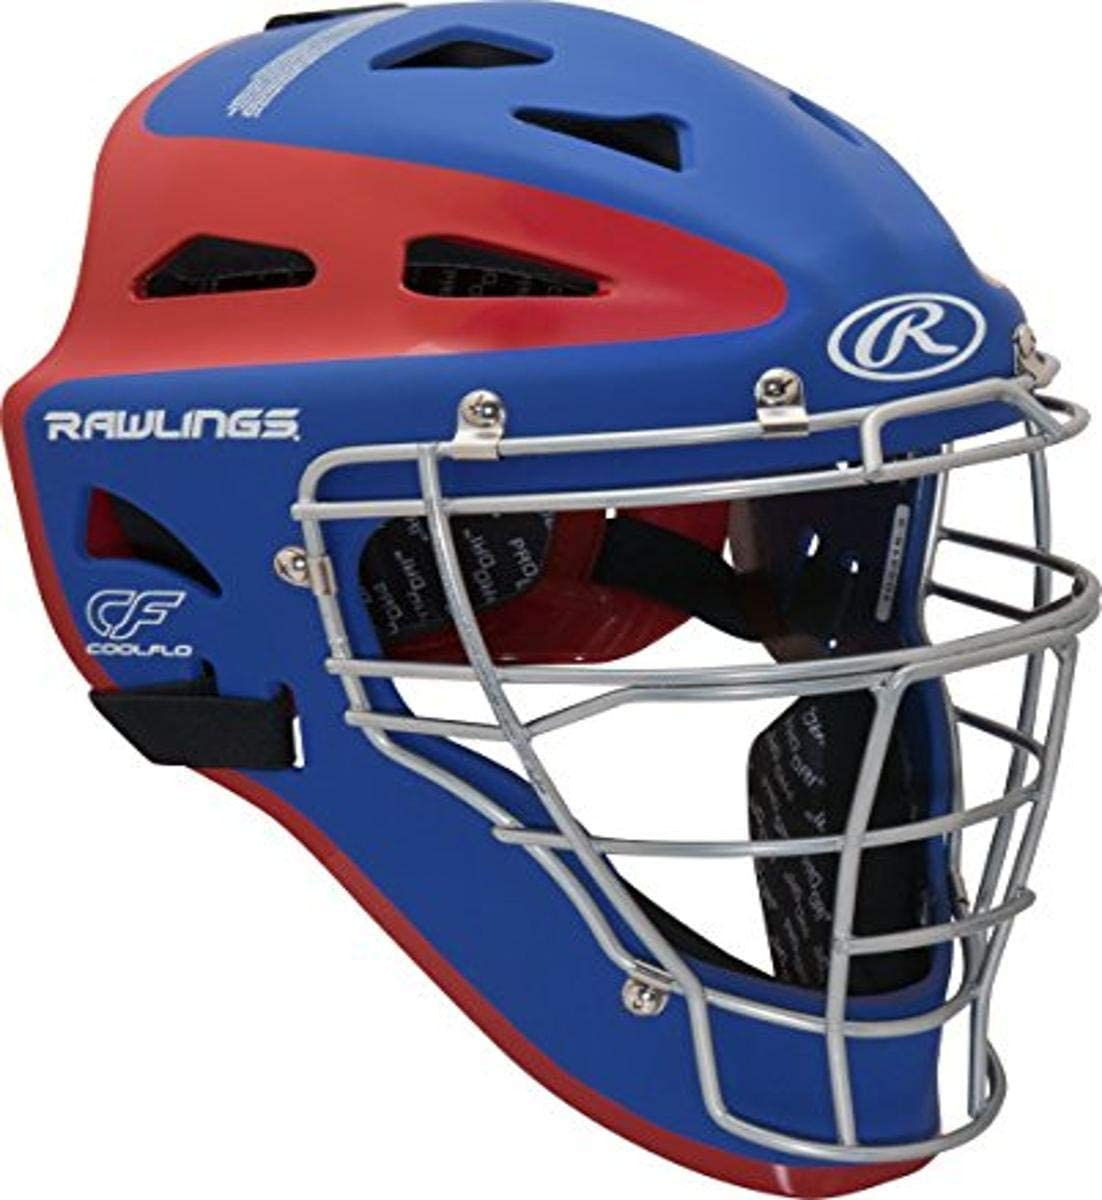 Rawlings Sporting Goods Catchers Helmet Velo Series Adult 7 1//8-7 3//4 inch CHVEL